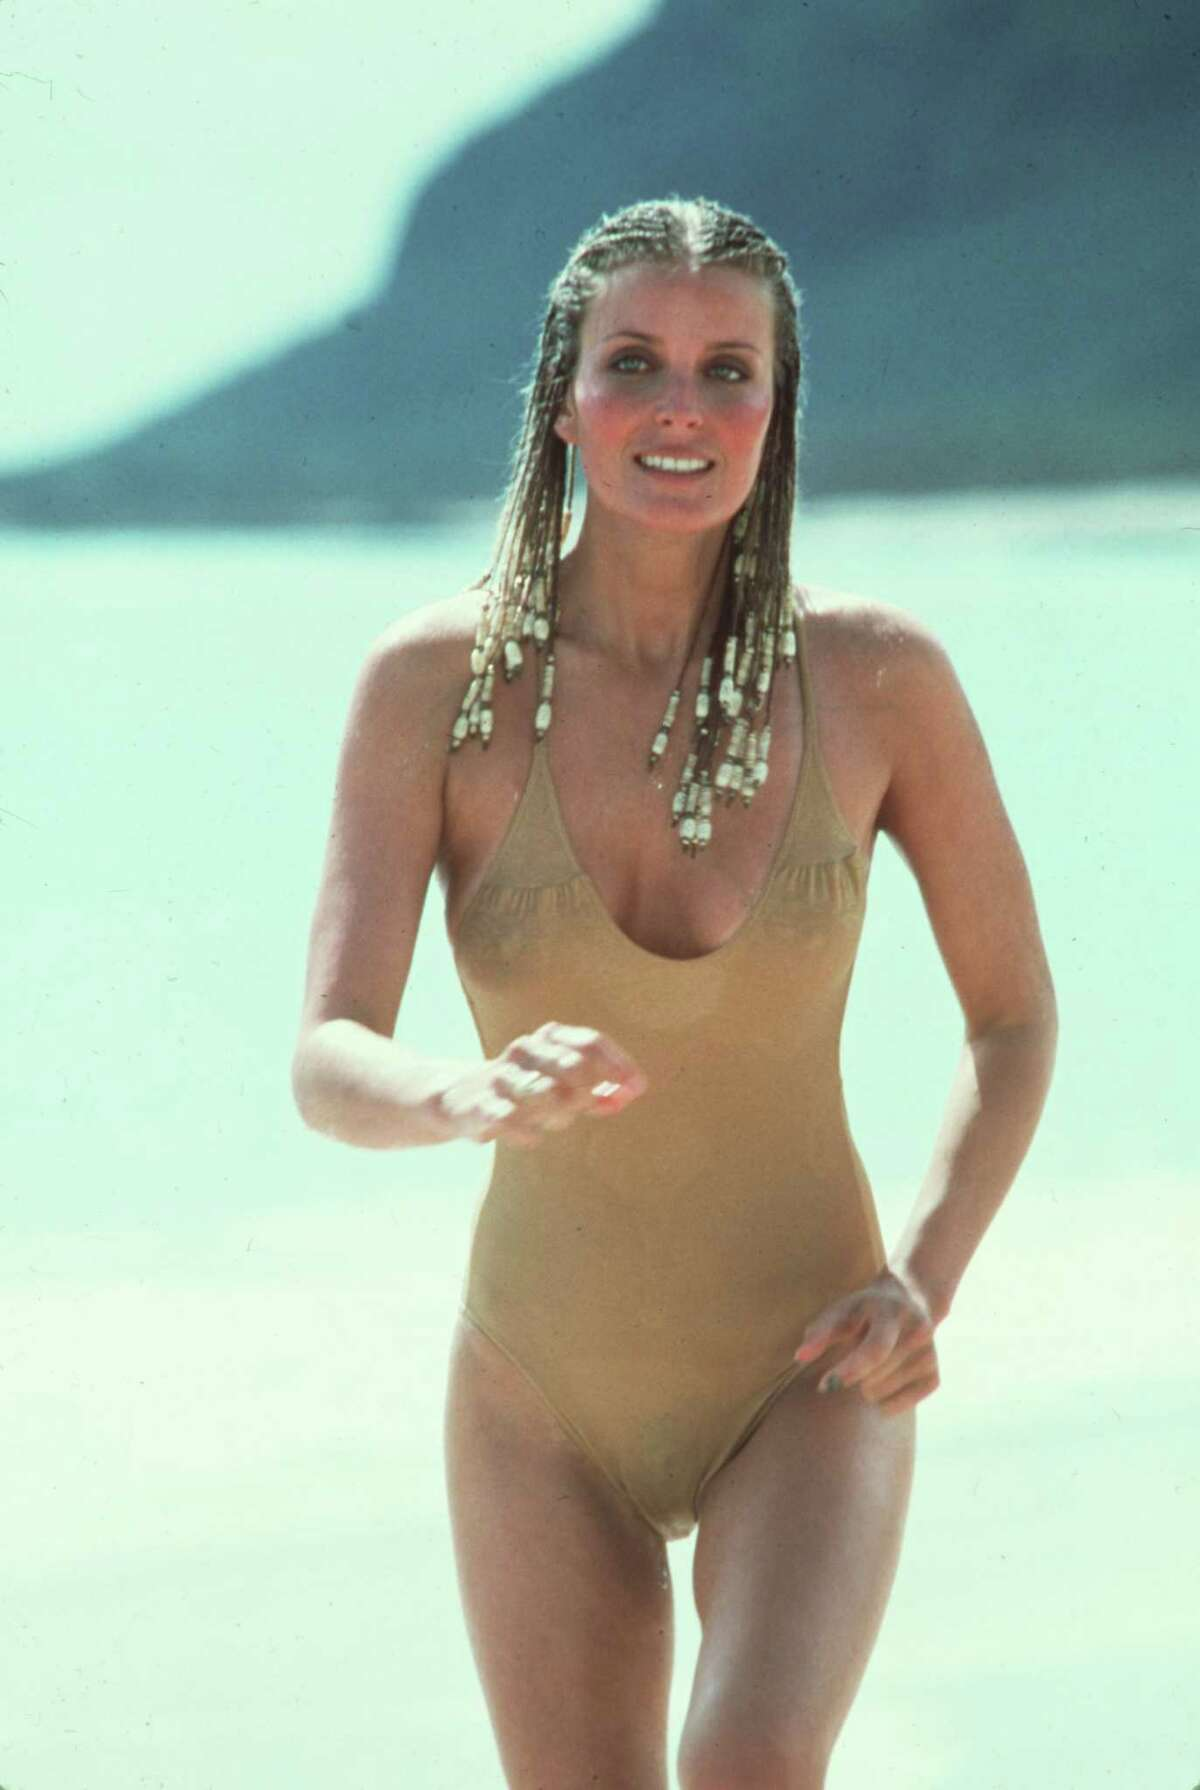 Maurice Ravel's most famous 15 minutes of music was commissioned in 1928 as a ballet score but was hijacked by Bo Derek (pictured) in the hit 1979 comedy when she asked Dudley Moore,